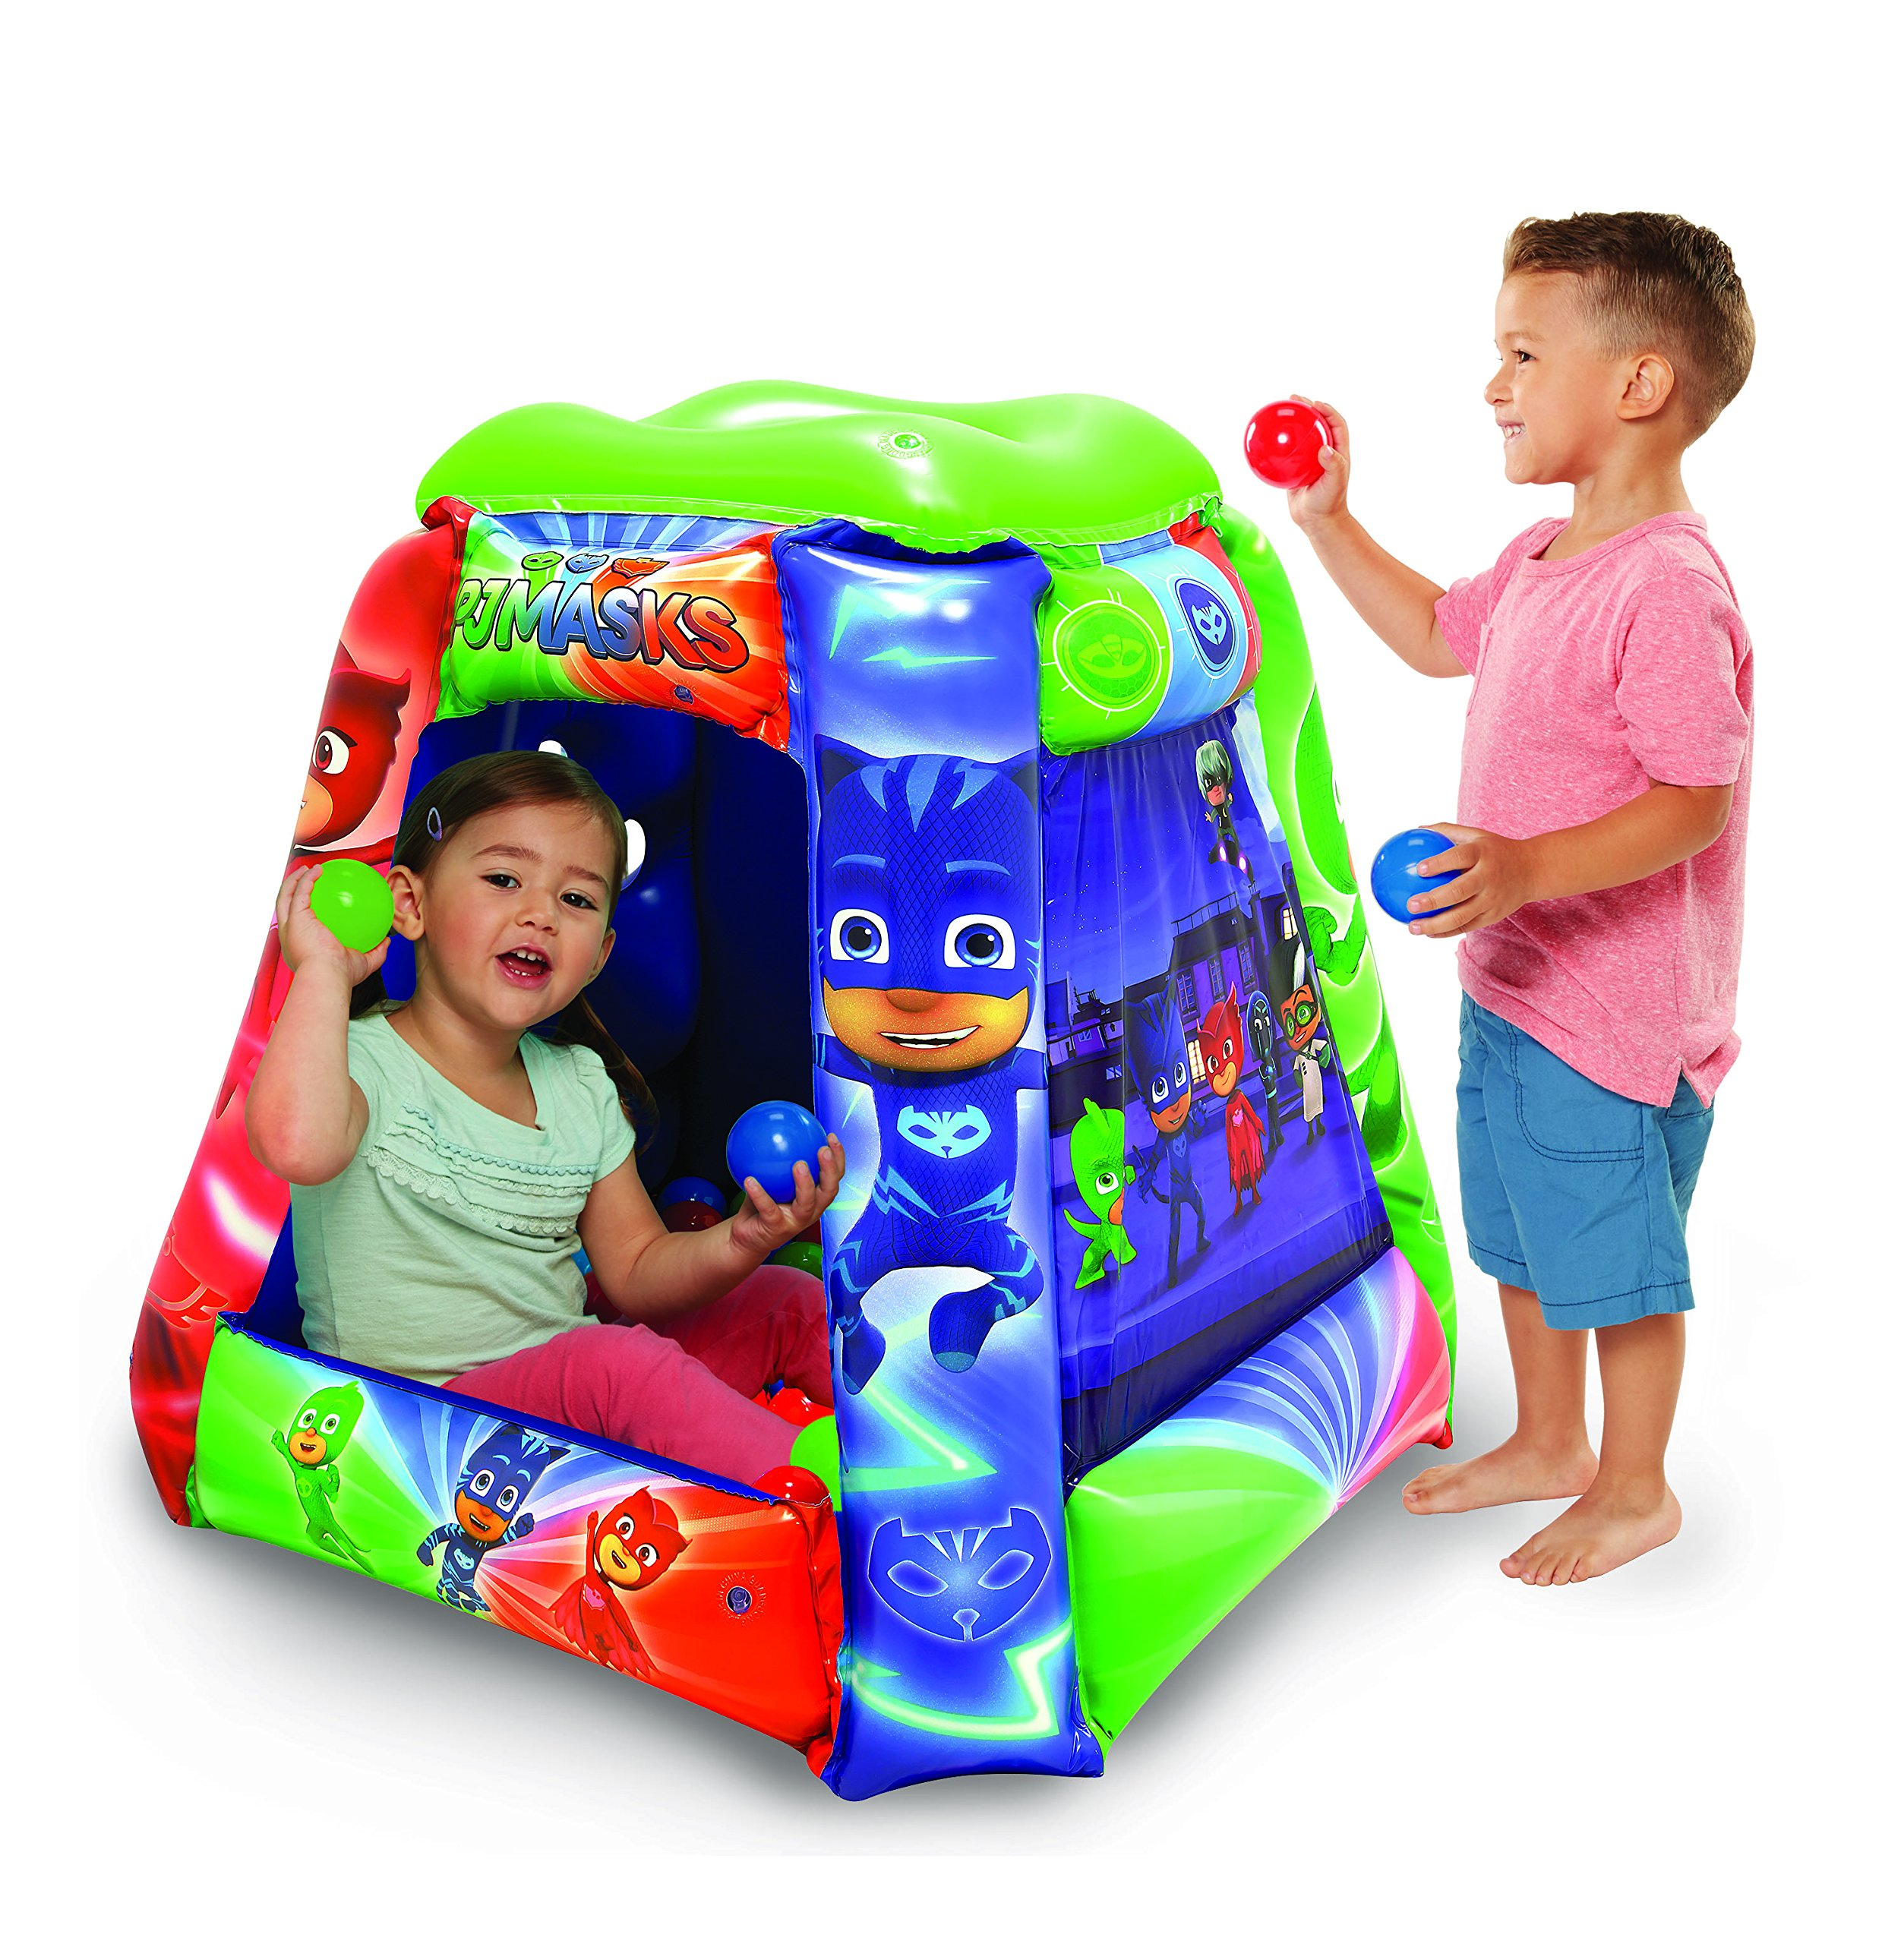 PJ Masks Ball Pit, 1 Inflatable & 20 Sof-Flex Balls, Blue/Green/Red, 37''W x 37''D x 34''H by Moose Mountain